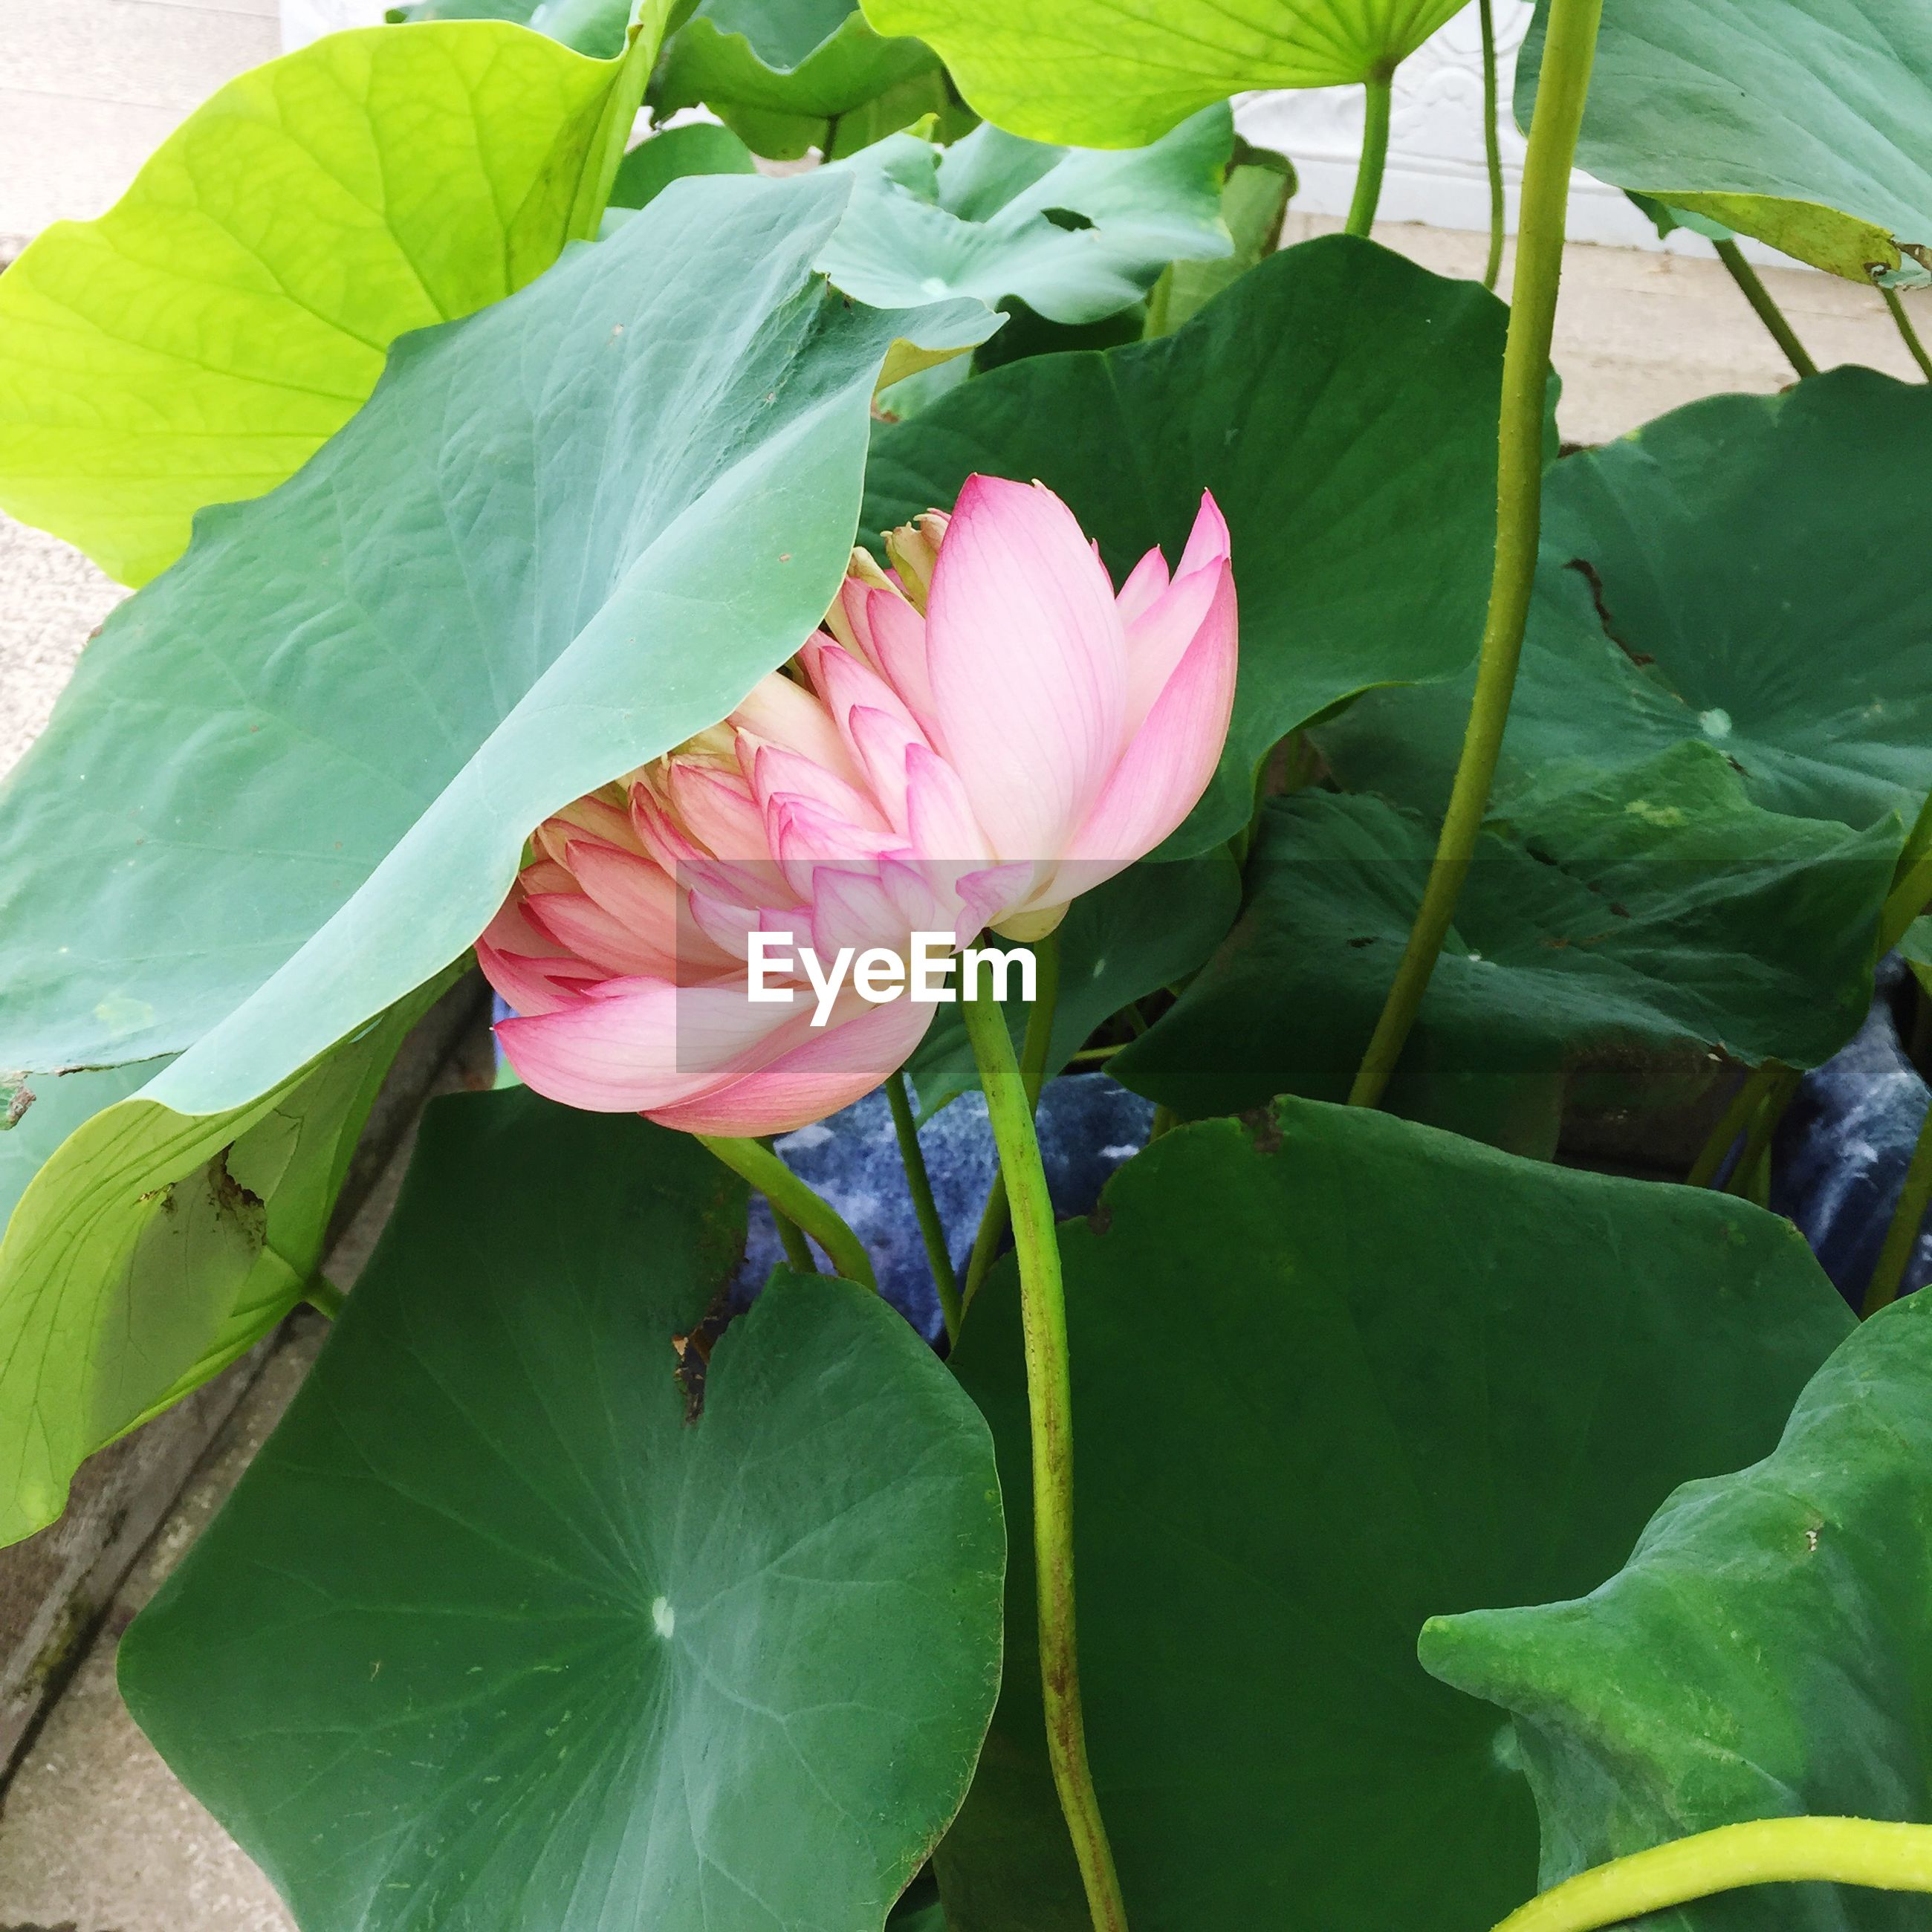 flower, leaf, freshness, petal, growth, fragility, pink color, flower head, beauty in nature, plant, nature, green color, blooming, close-up, stem, single flower, in bloom, blossom, pink, bud